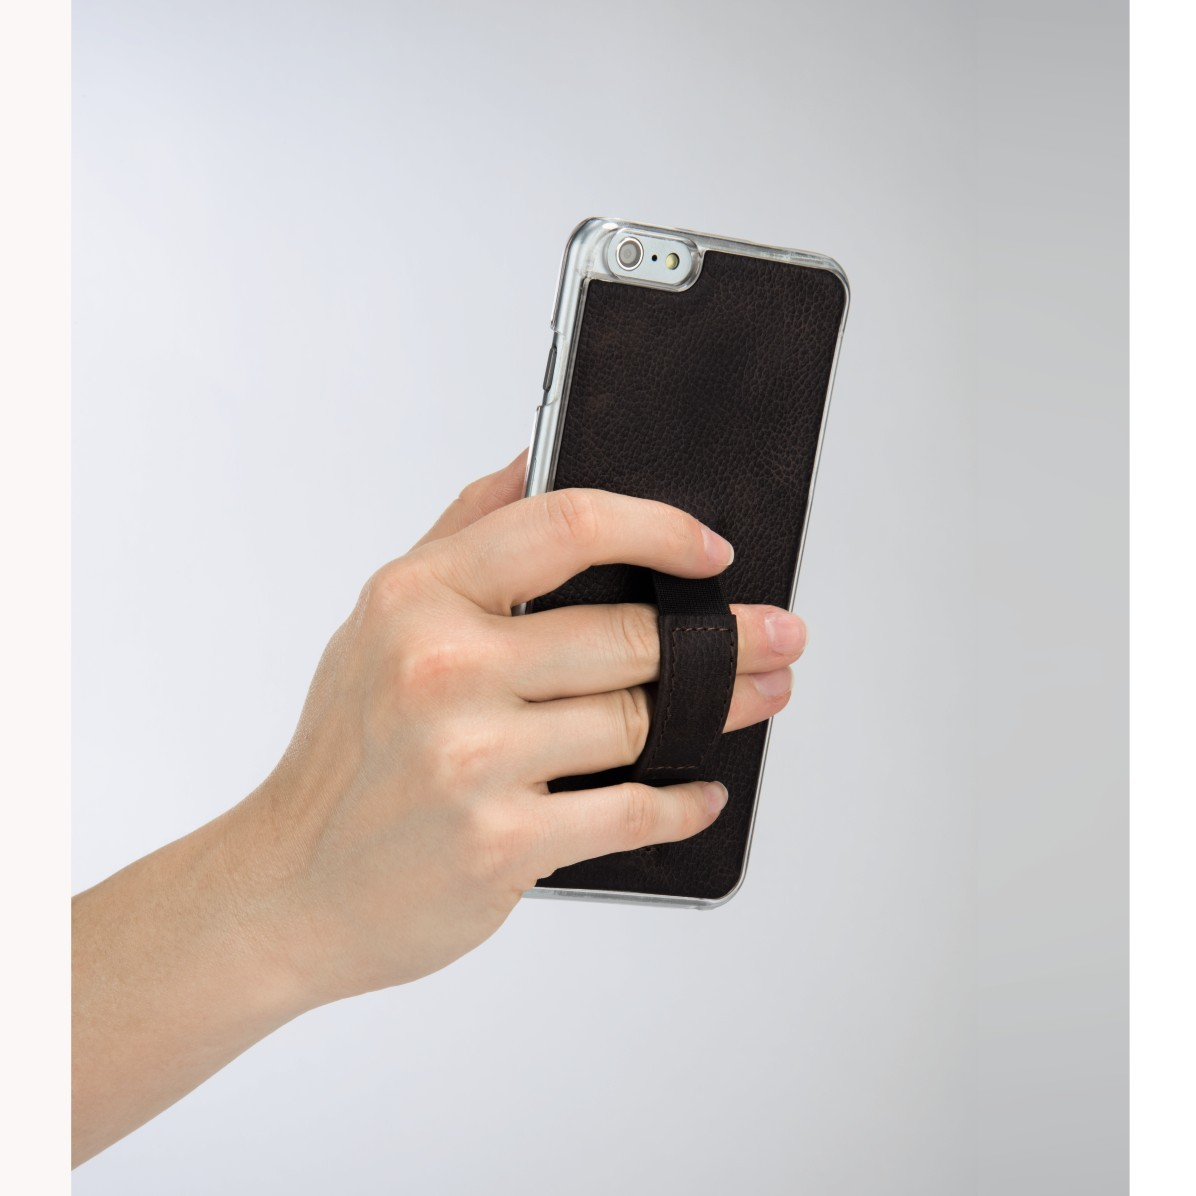 mobile Devices Mehr Halt für das iPhone 6 Plus: Hama-Cover mit flexibler Fingerschlaufe - News, Bild 1